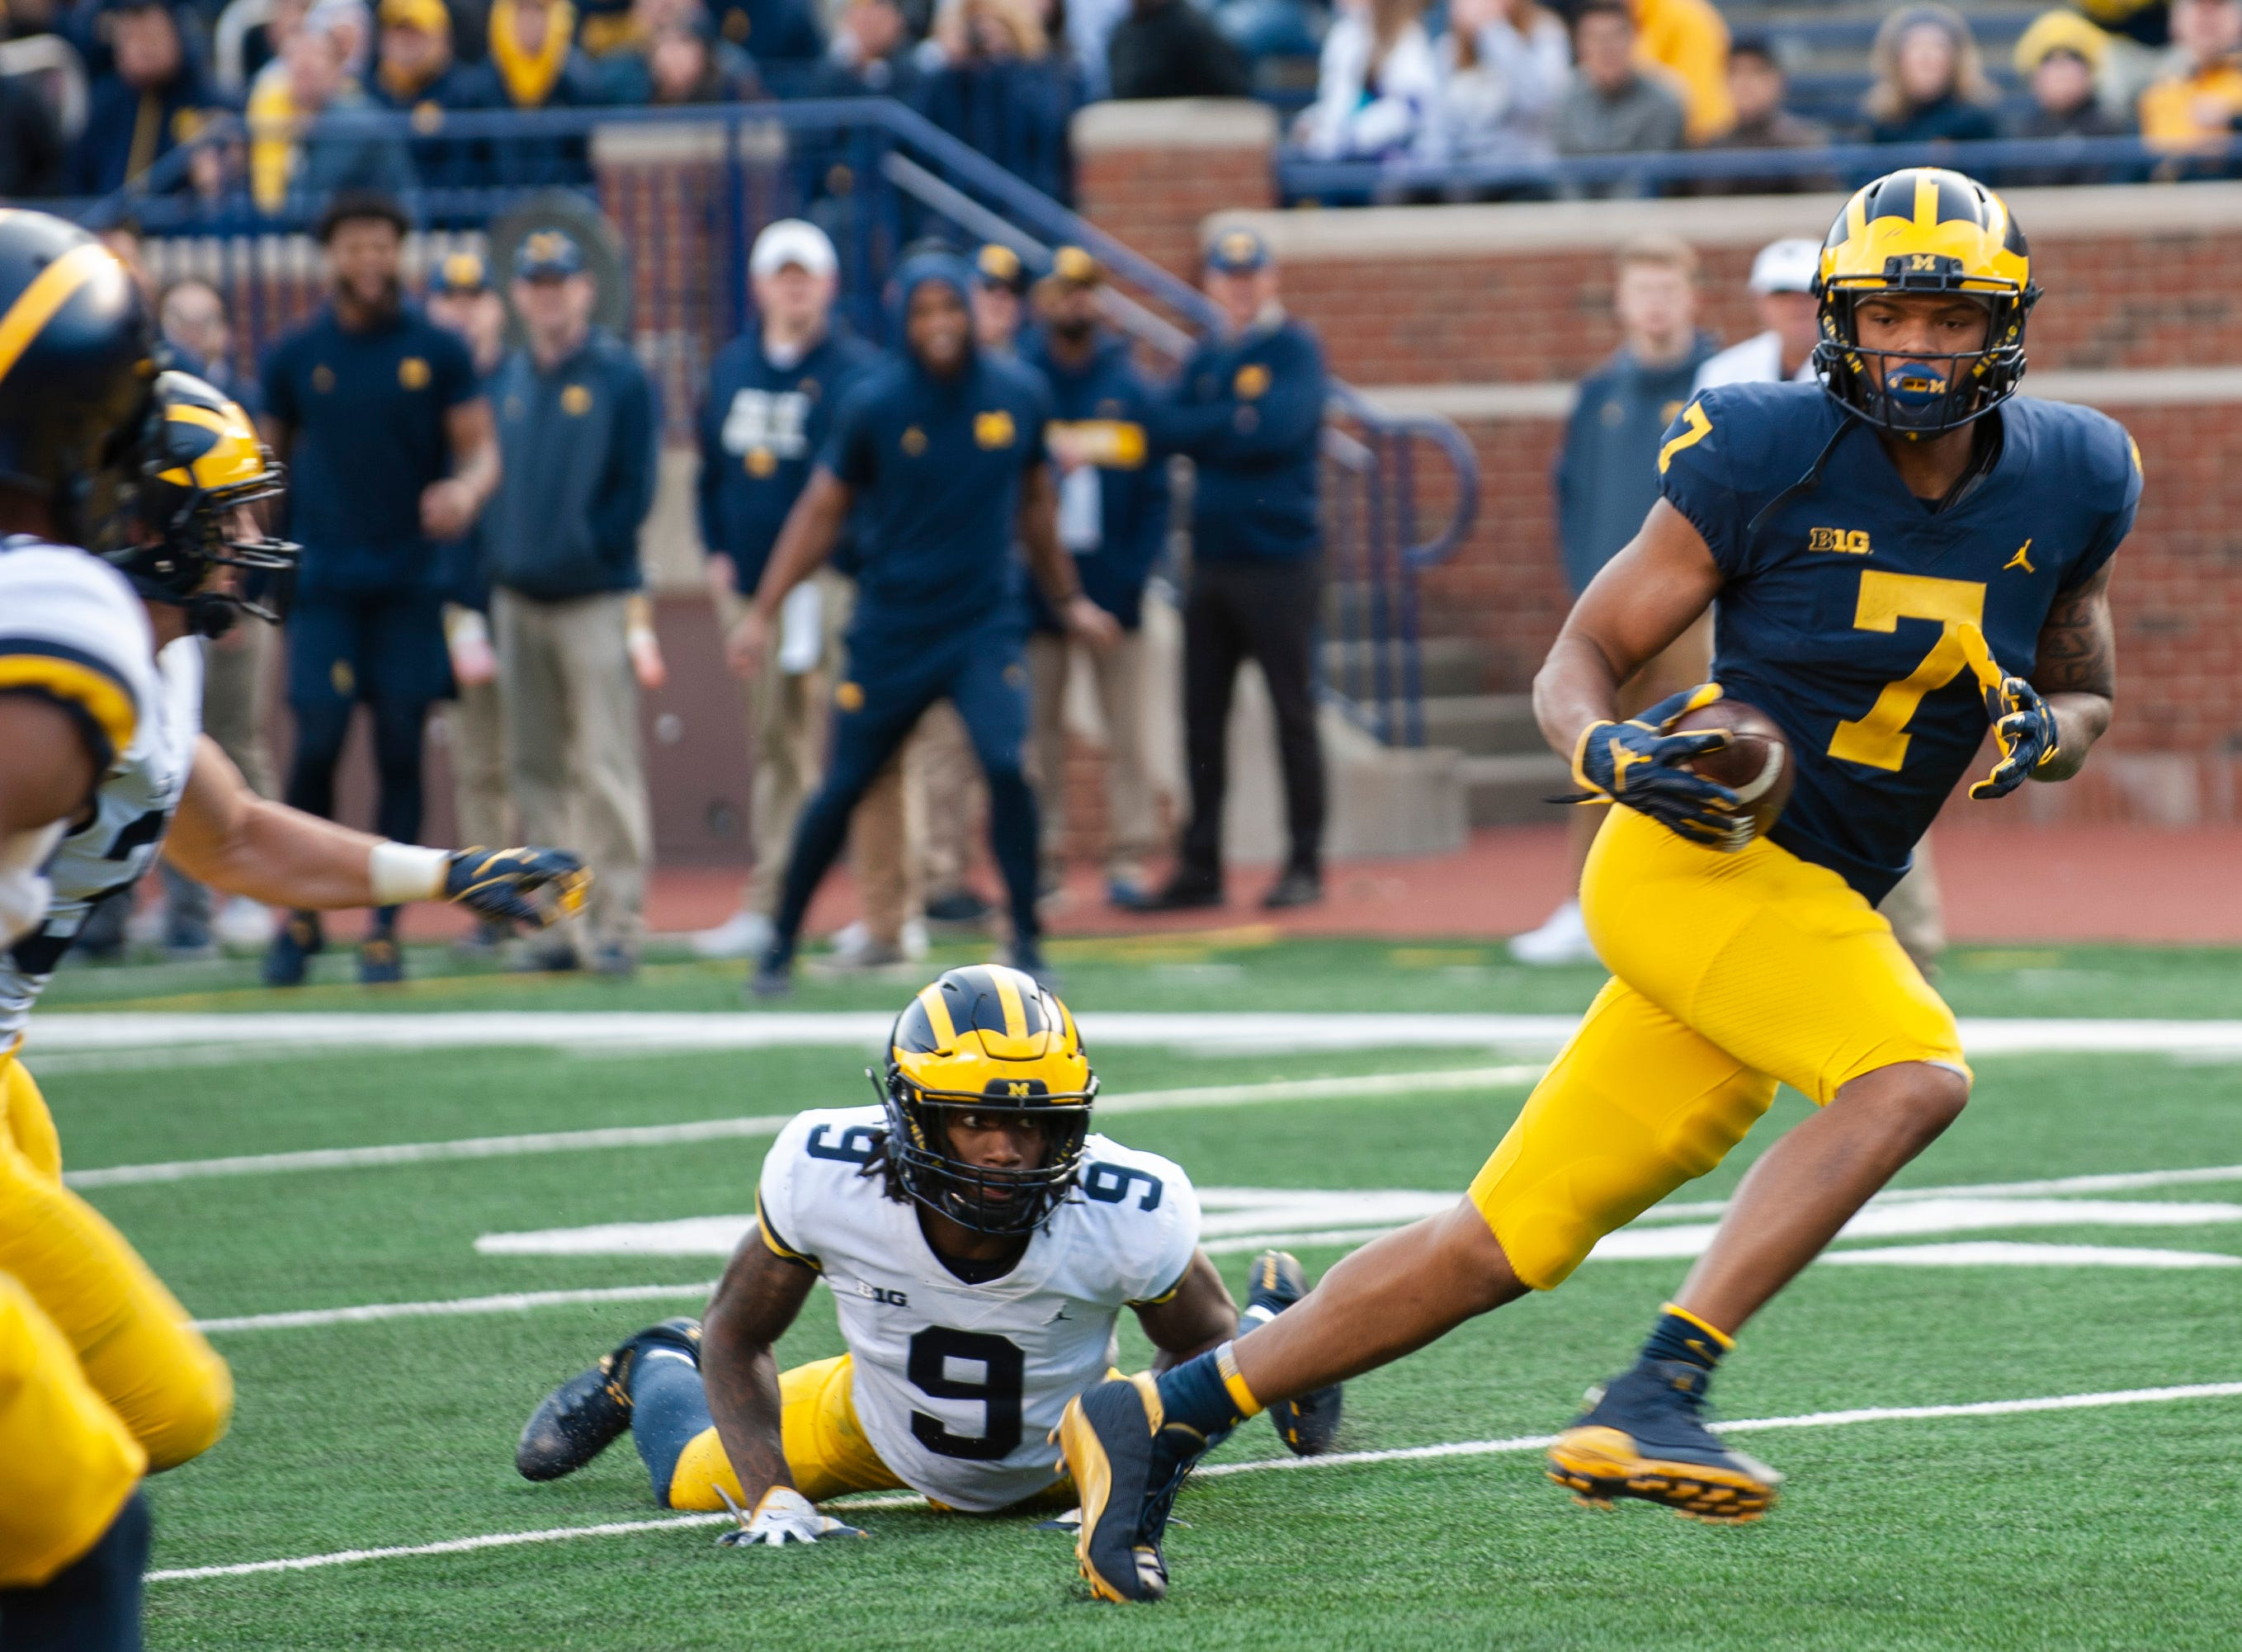 Michigan WR Tarik Black breaks away from DB Gemon Green on his way to the endzone for a touchdown.